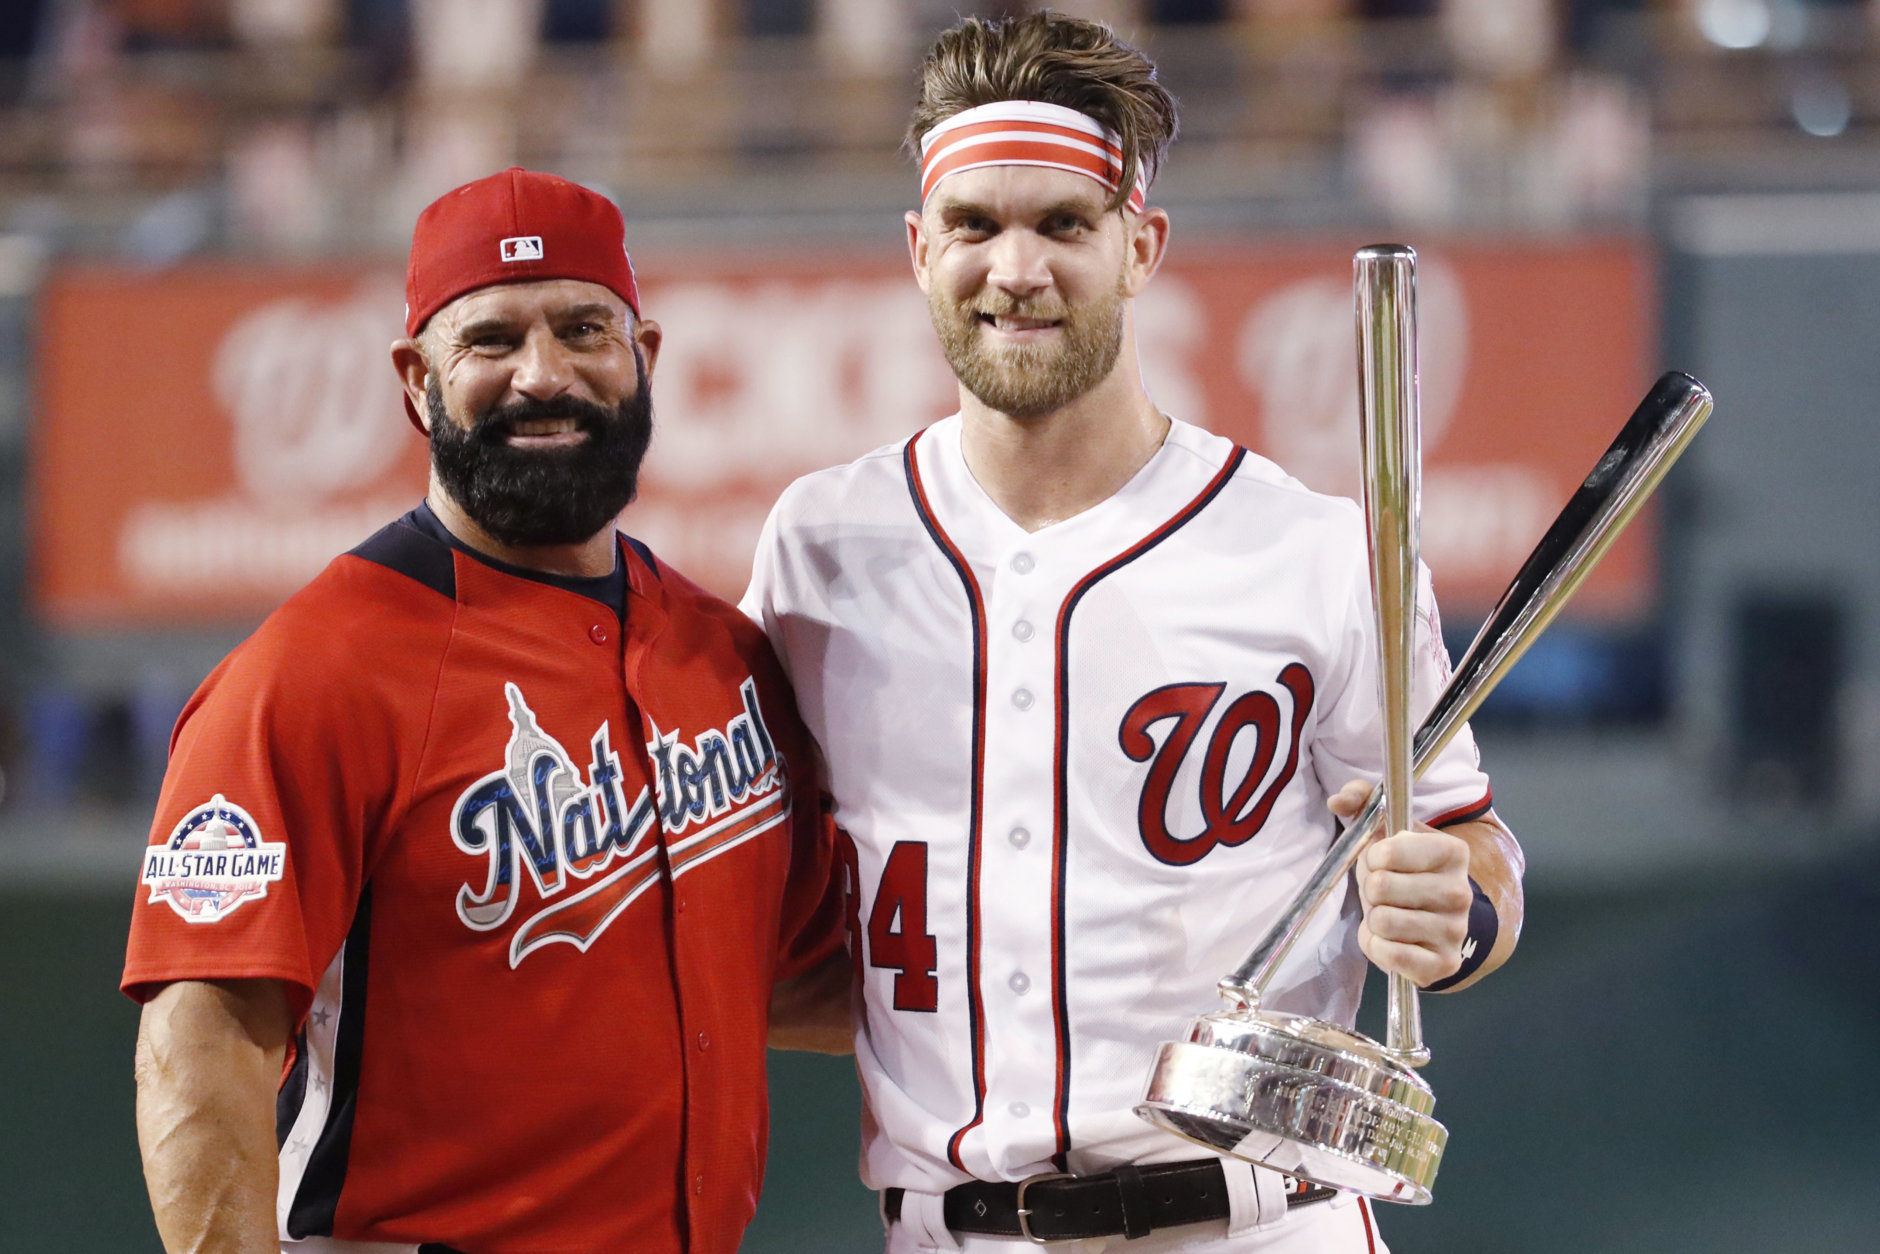 Washington Nationals Bryce Harper stands with his father Ron Harper after Bryce won the Major League Baseball Home Run Derby, Monday, July 16, 2018 in Washington. The 89th MLB baseball All-Star Game will be played Tuesday. (AP Photo/Alex Brandon)